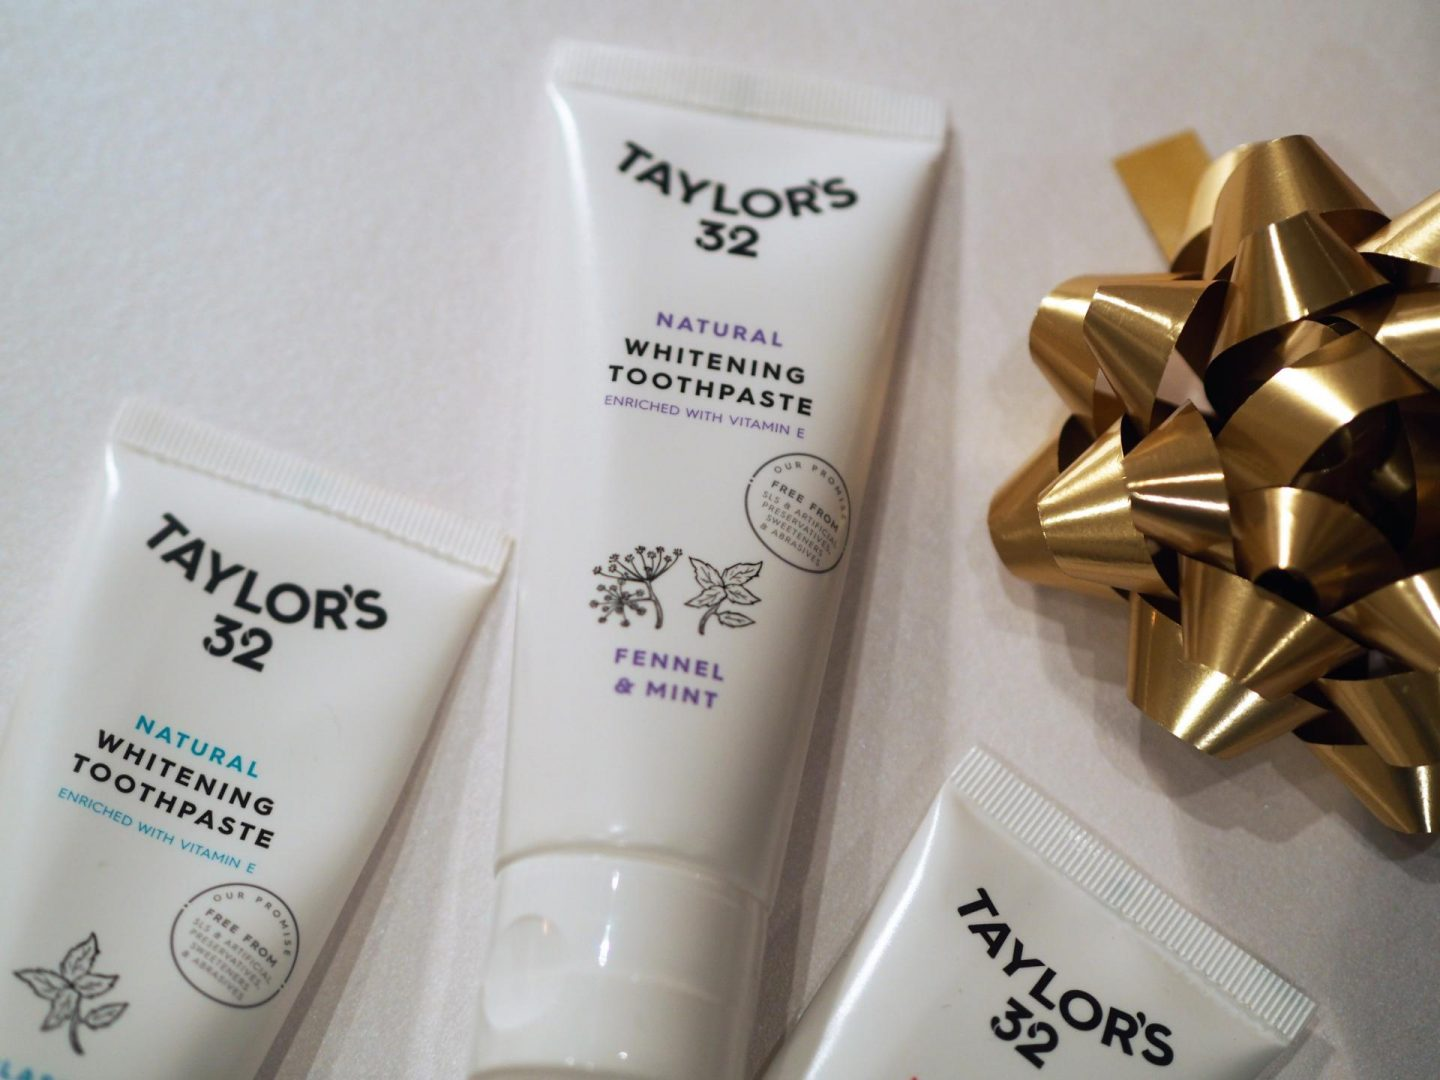 Taylor's 32 Natural Whitening Toothpaste (Fennel & Mint, Grapefruit & Mint, Classic Mint)